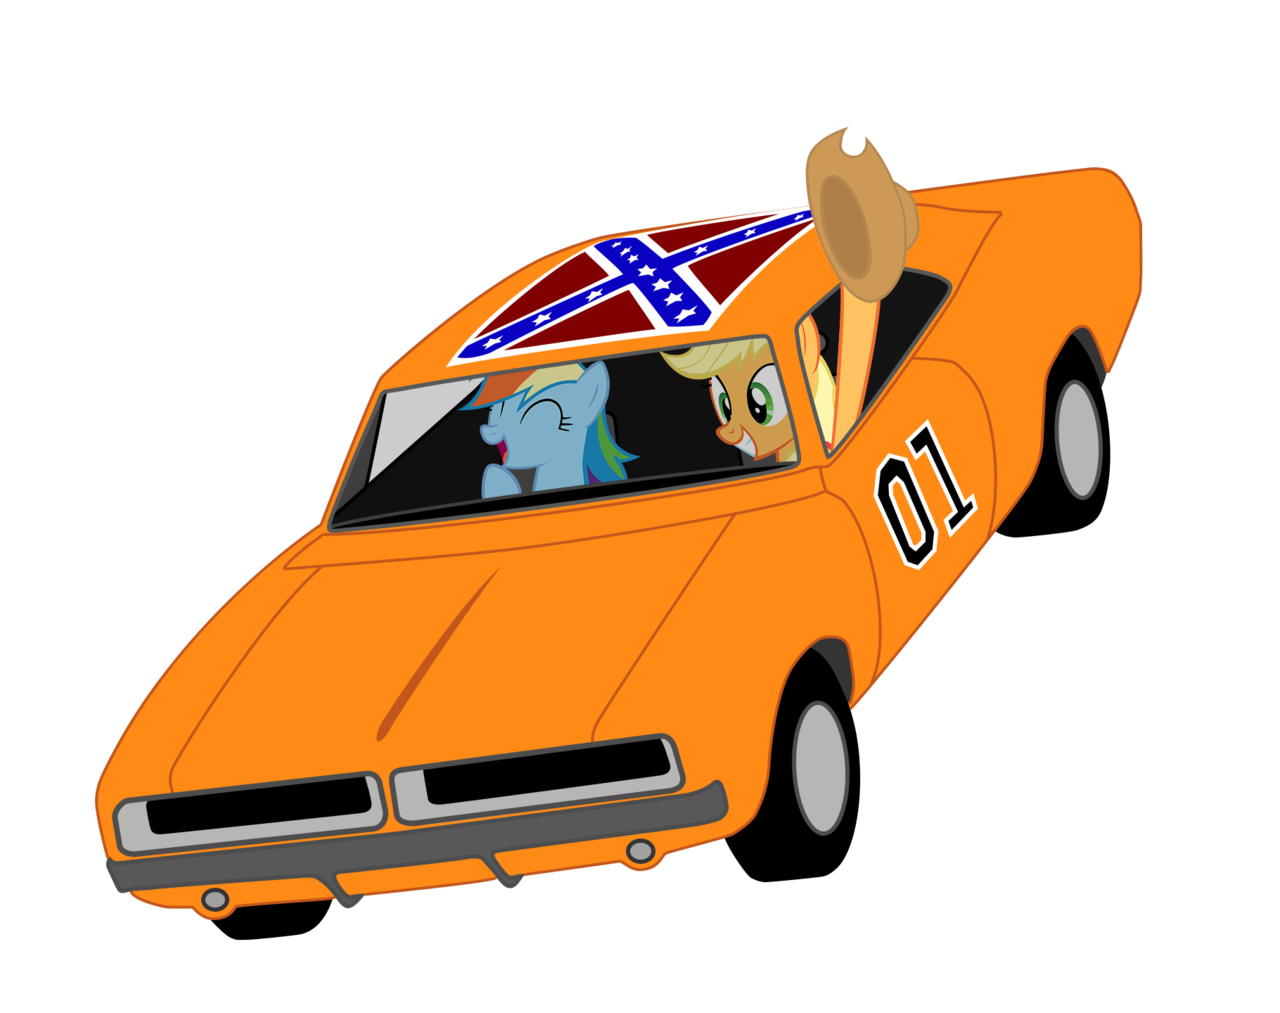 General lee car clipart banner transparent download Dodge Charger Clipart at GetDrawings.com | Free for personal use ... banner transparent download